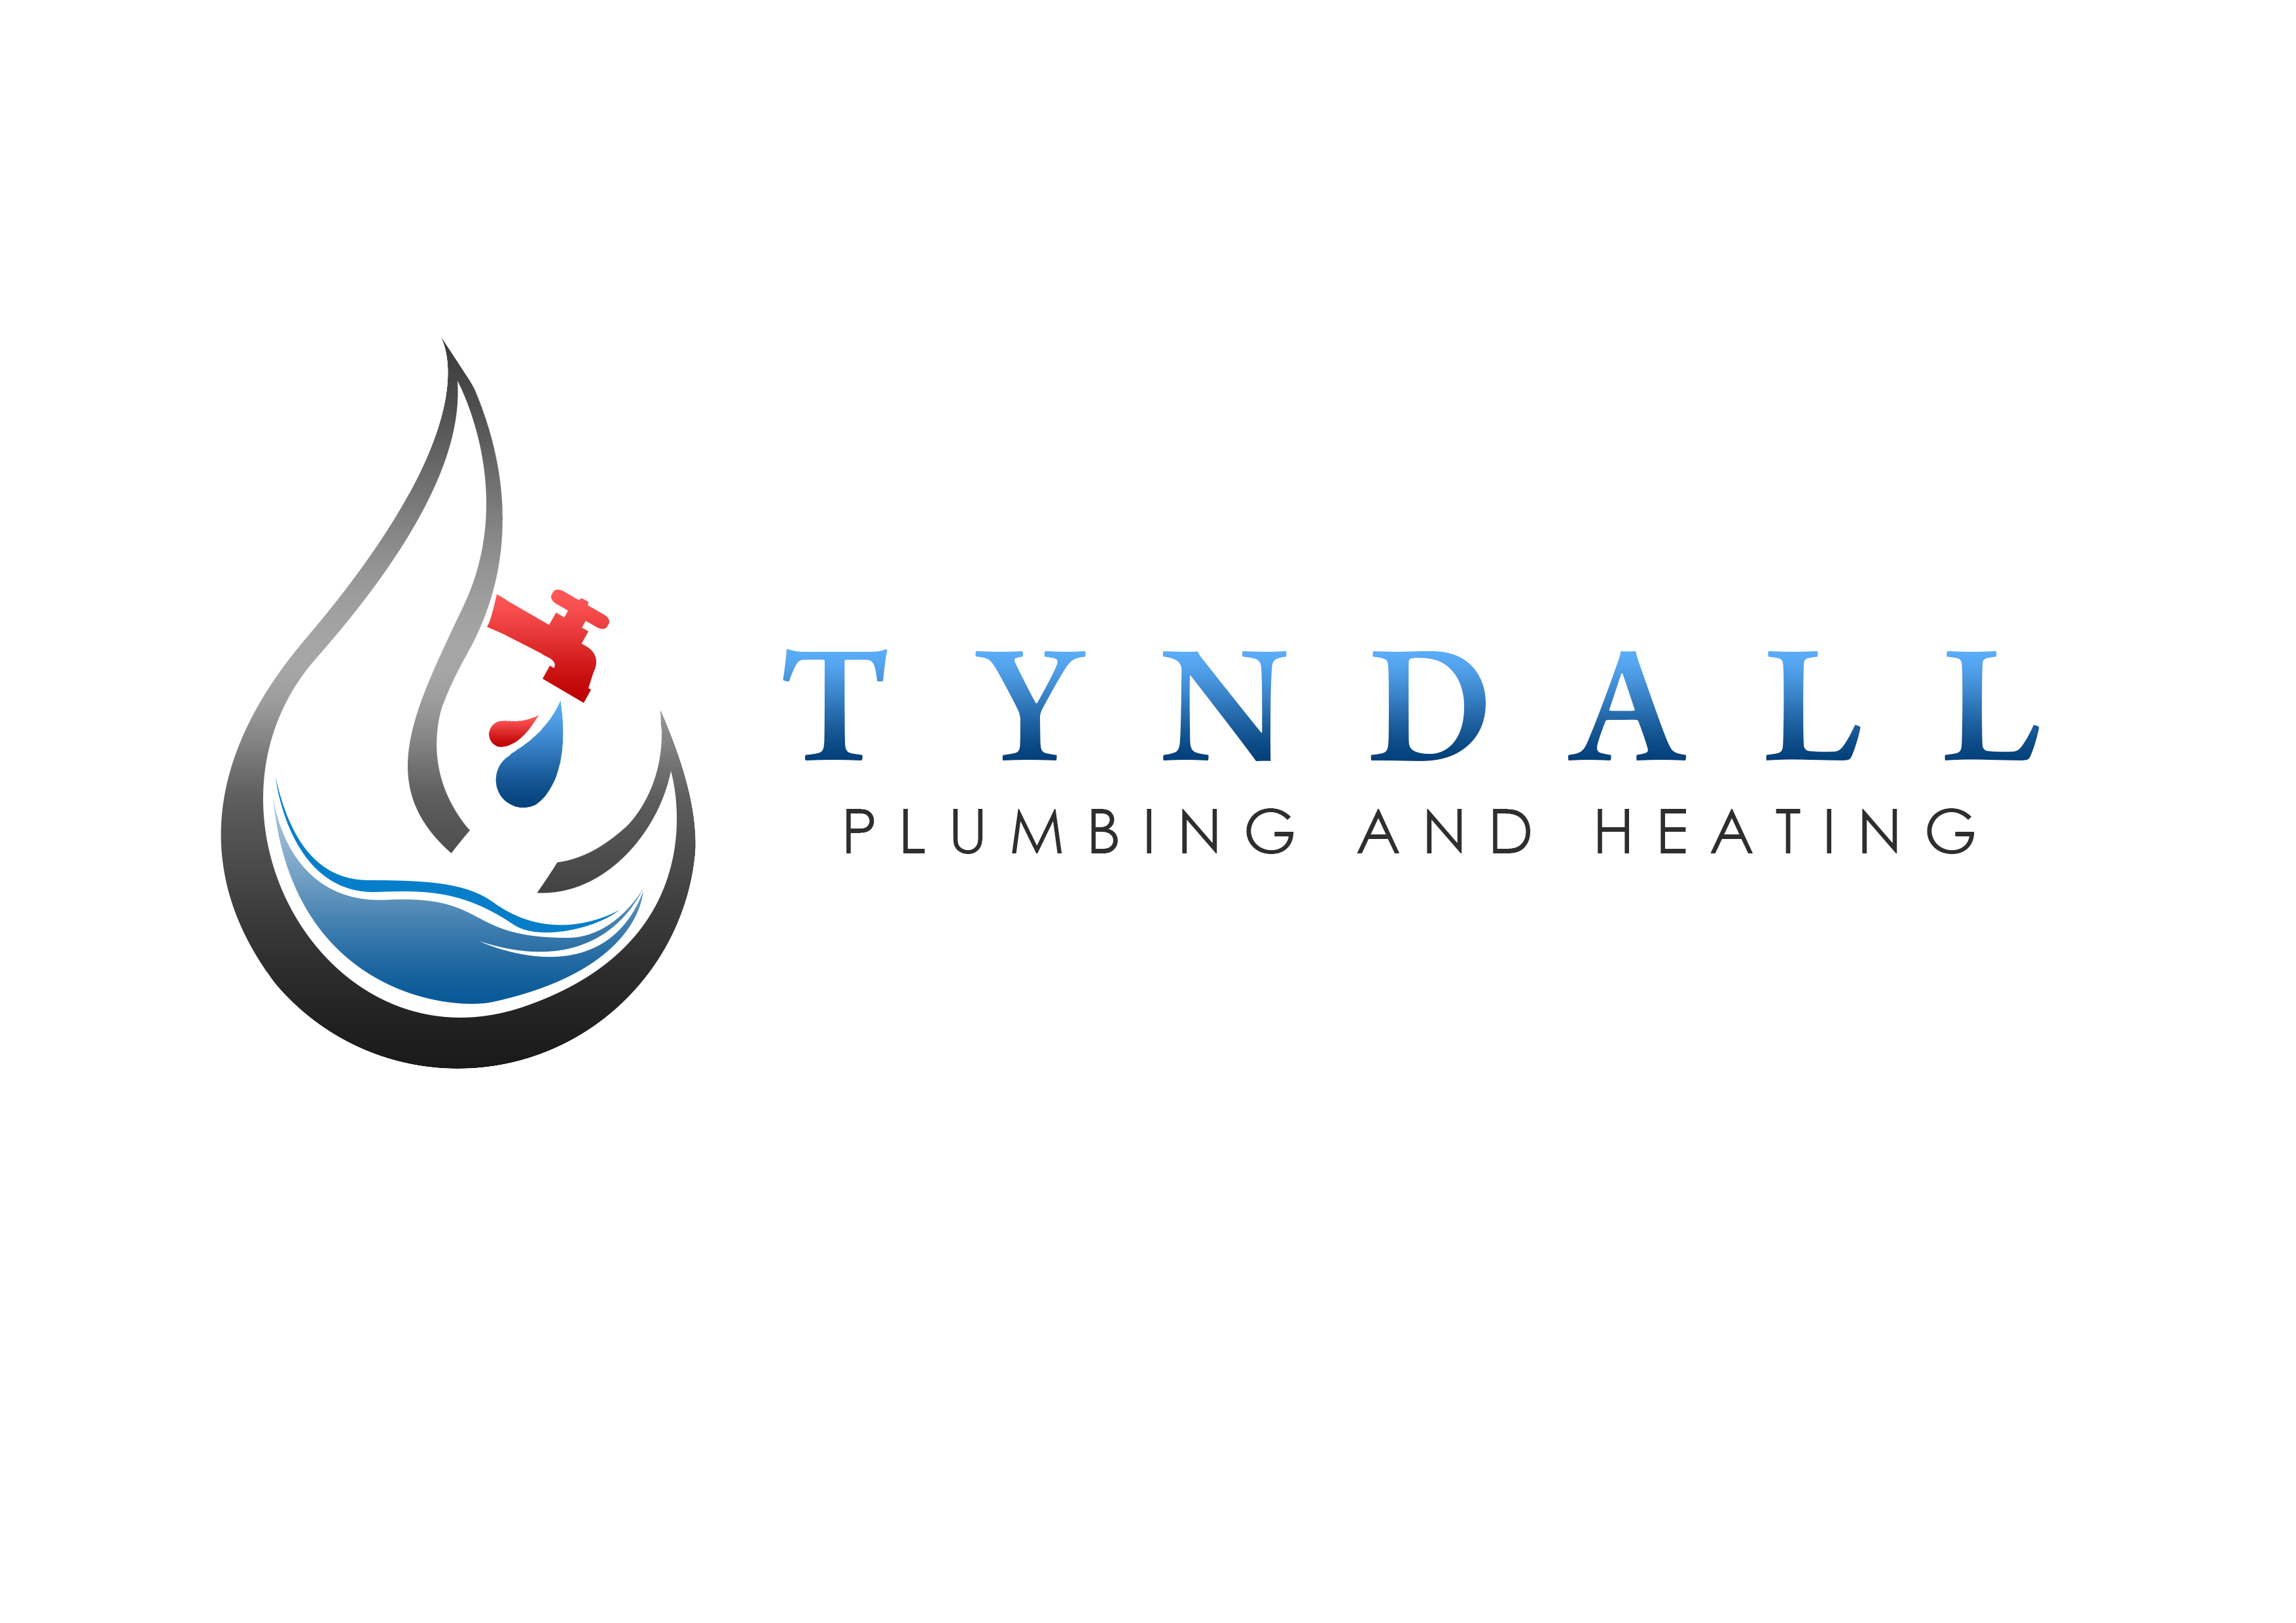 Logo Design by Jesther Jordan Minor - Entry No. 65 in the Logo Design Contest Imaginative Logo Design for Tyndall Plumbing & Heating.